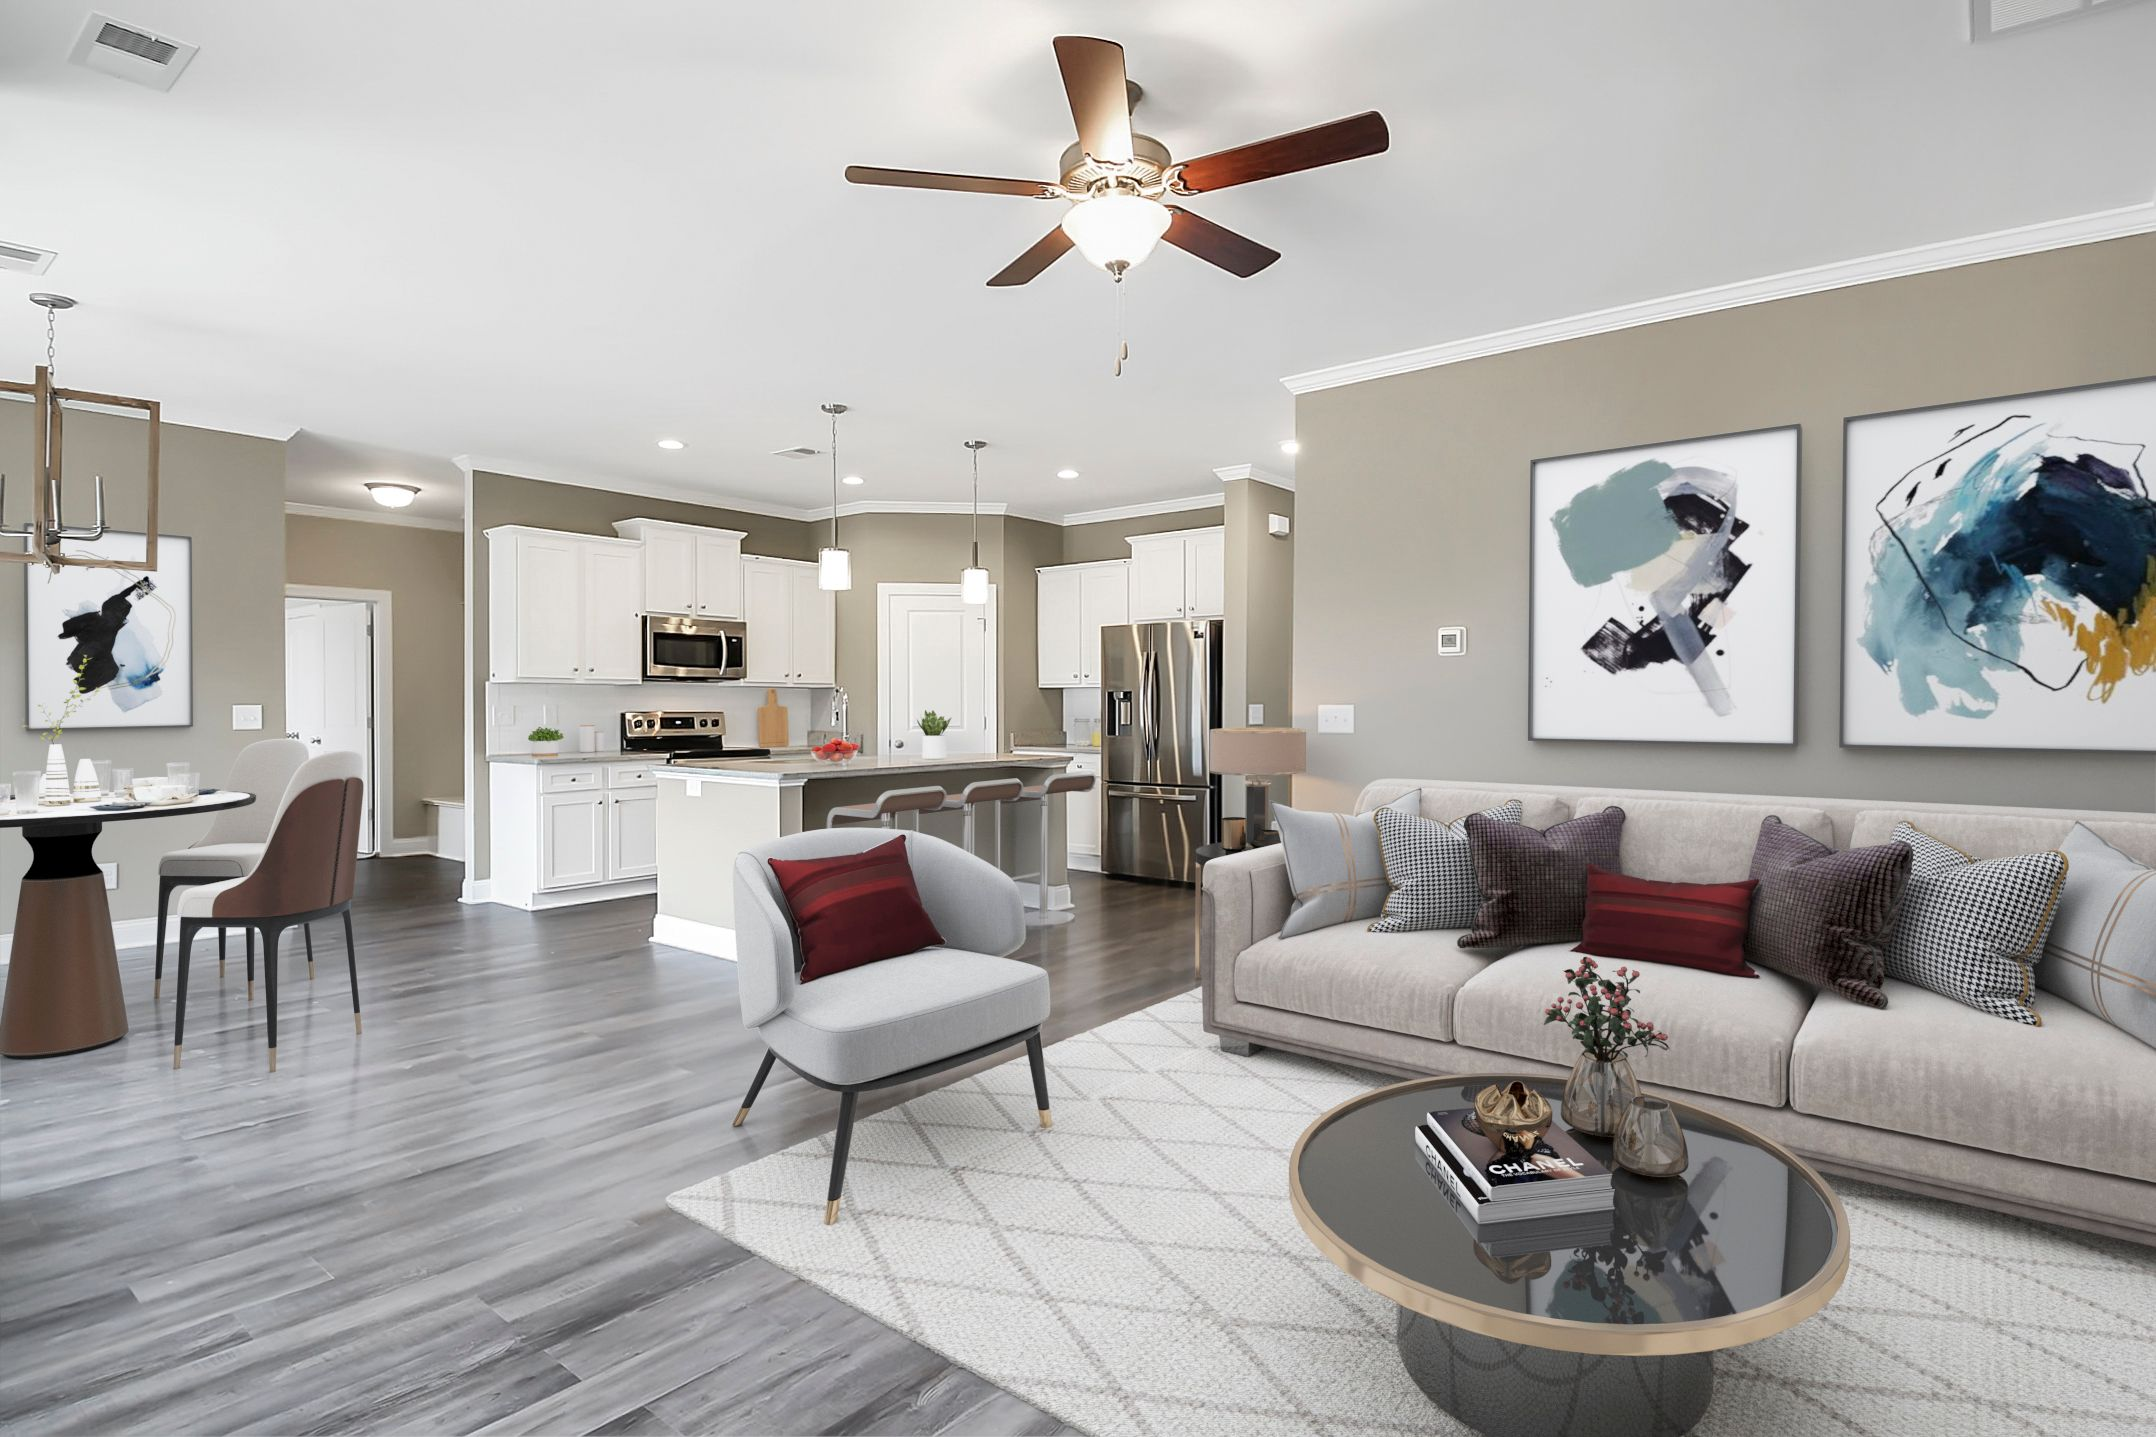 Living Area featured in the Sanctuary V Sidney Walk By Executive Construction Homes in Columbia, SC